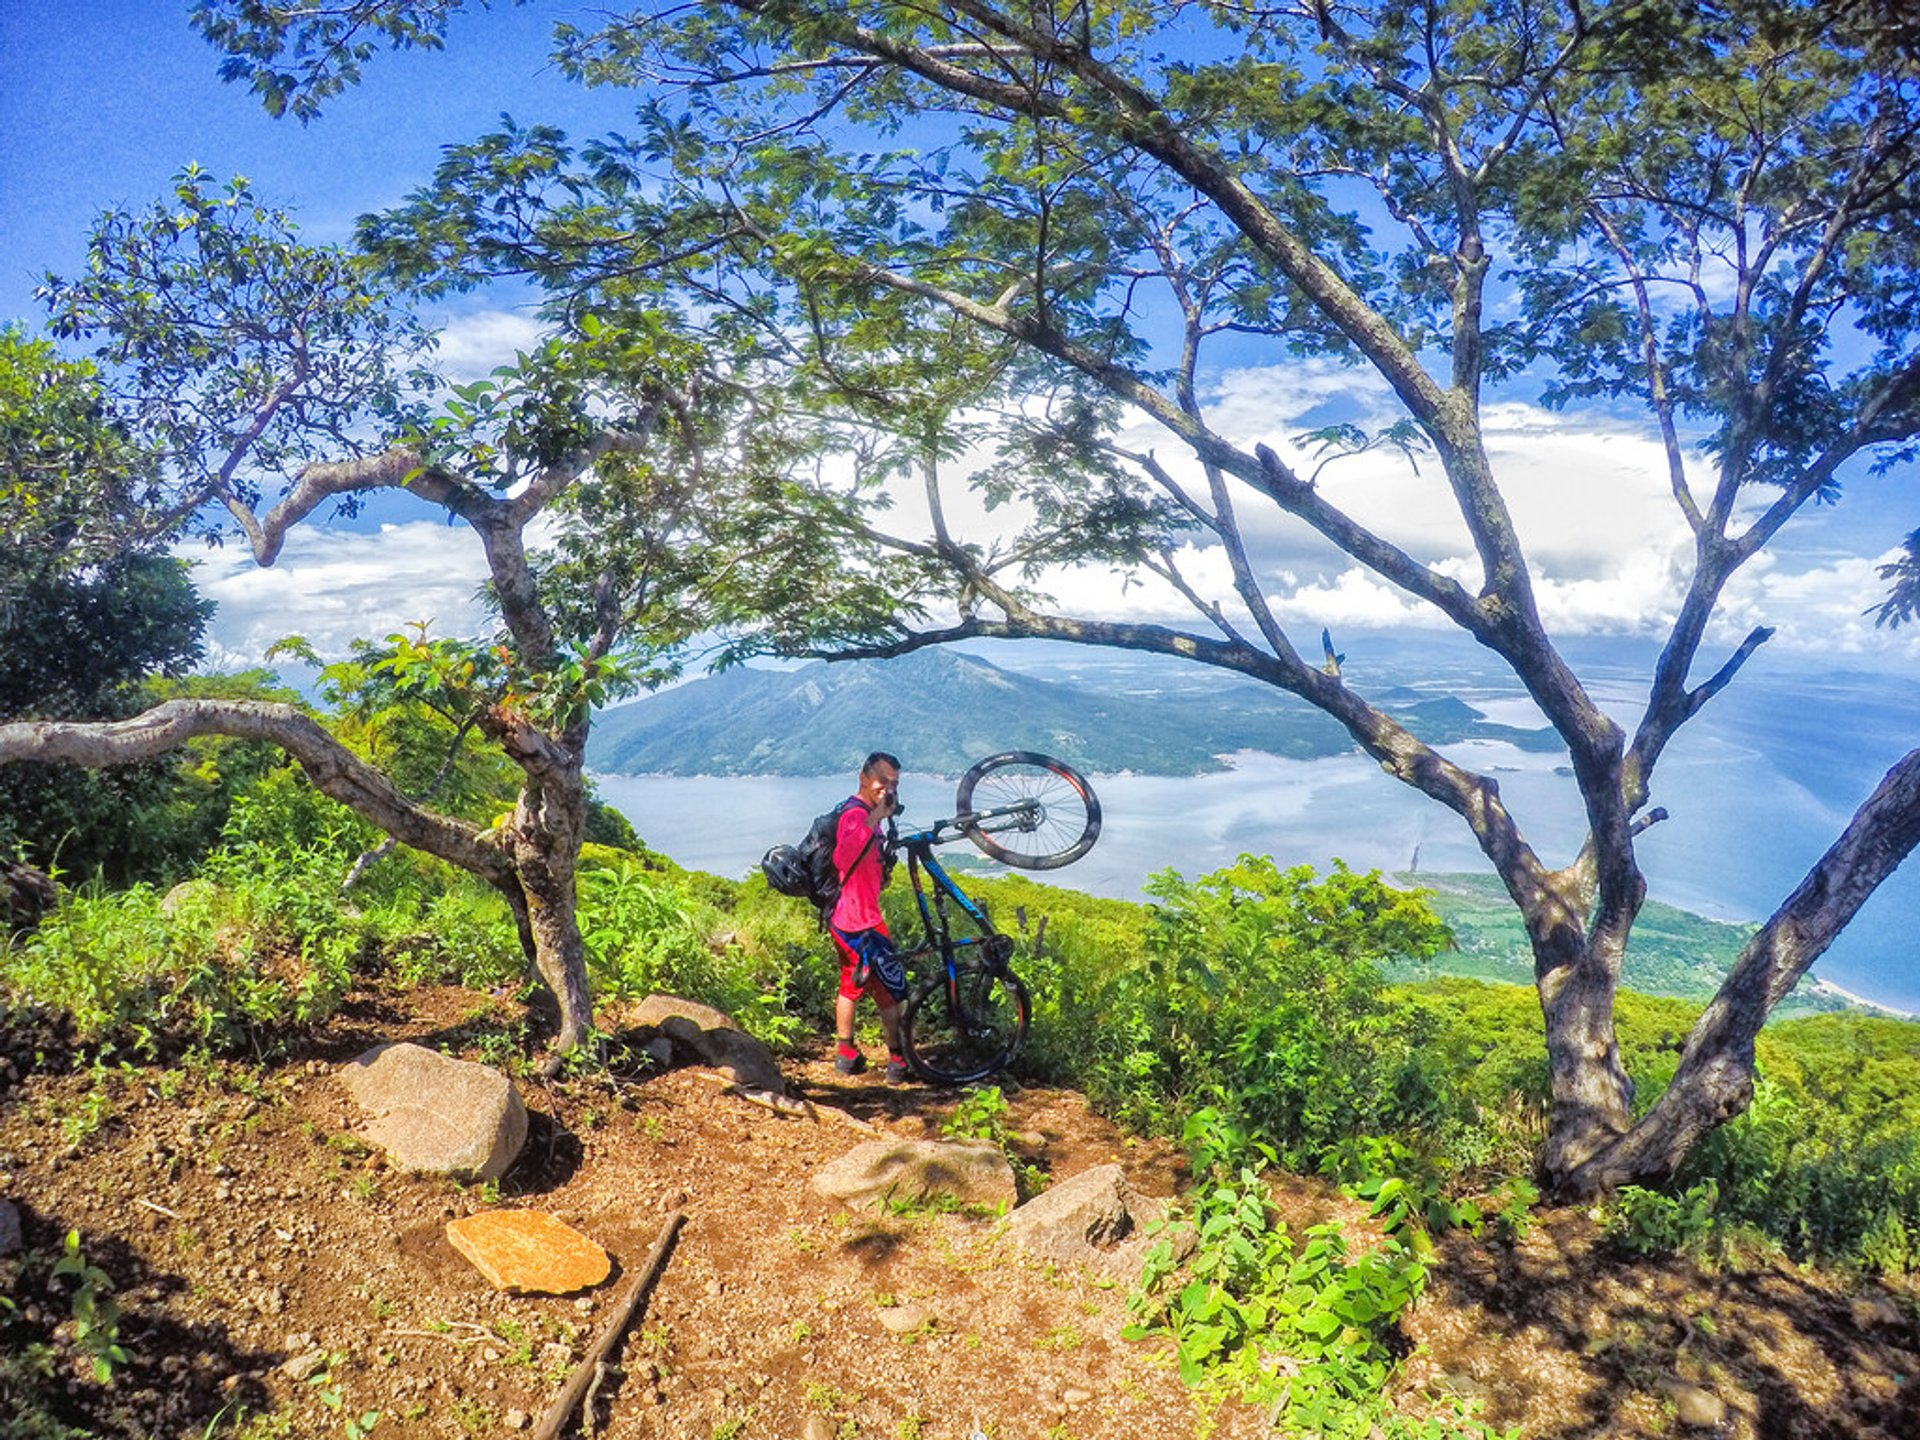 Mountain Biking in Honduras 2020 - Best Time